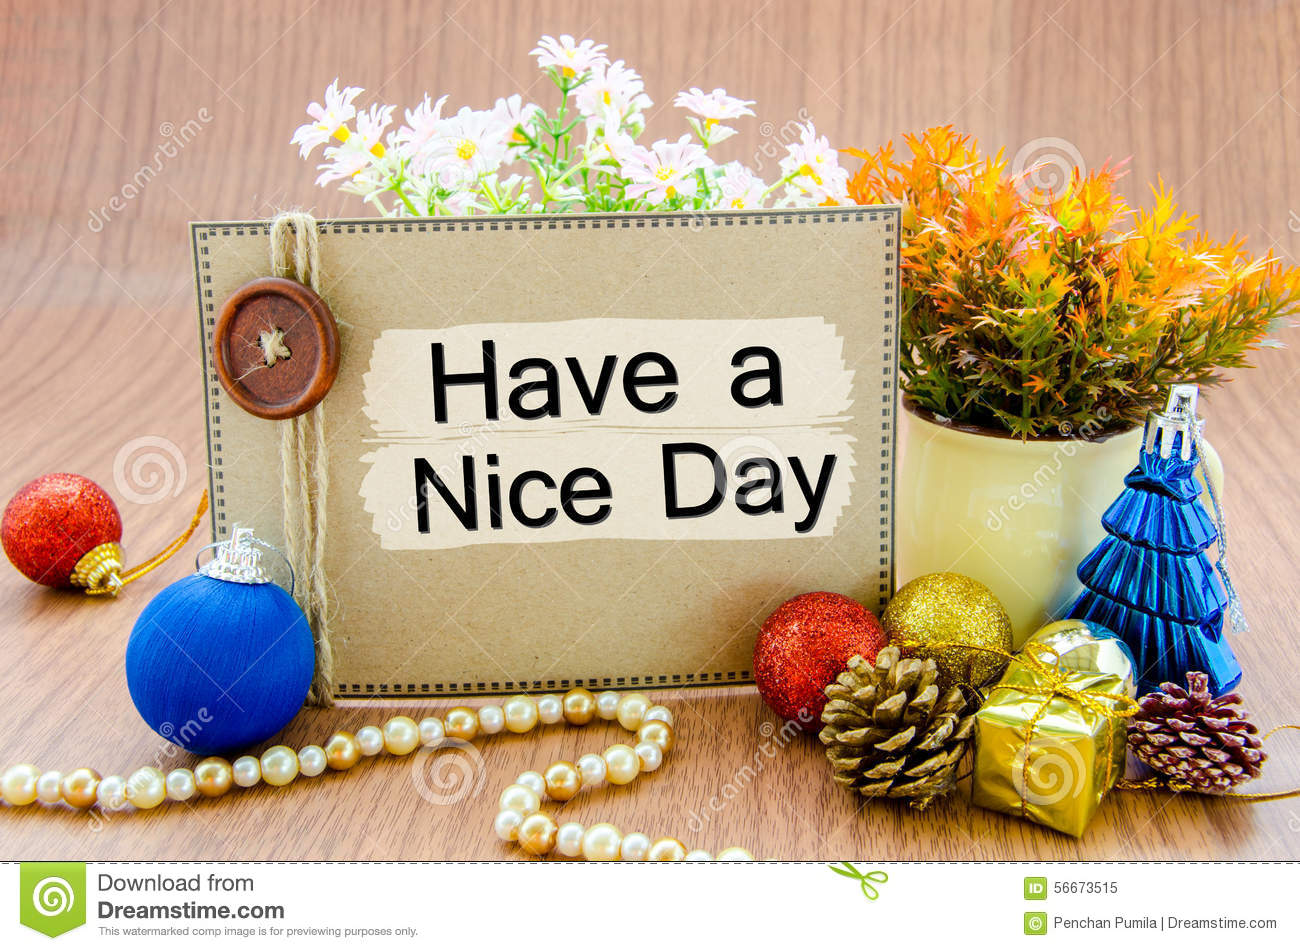 Have a nice day stock image. Image of blue, yellow, wish ...